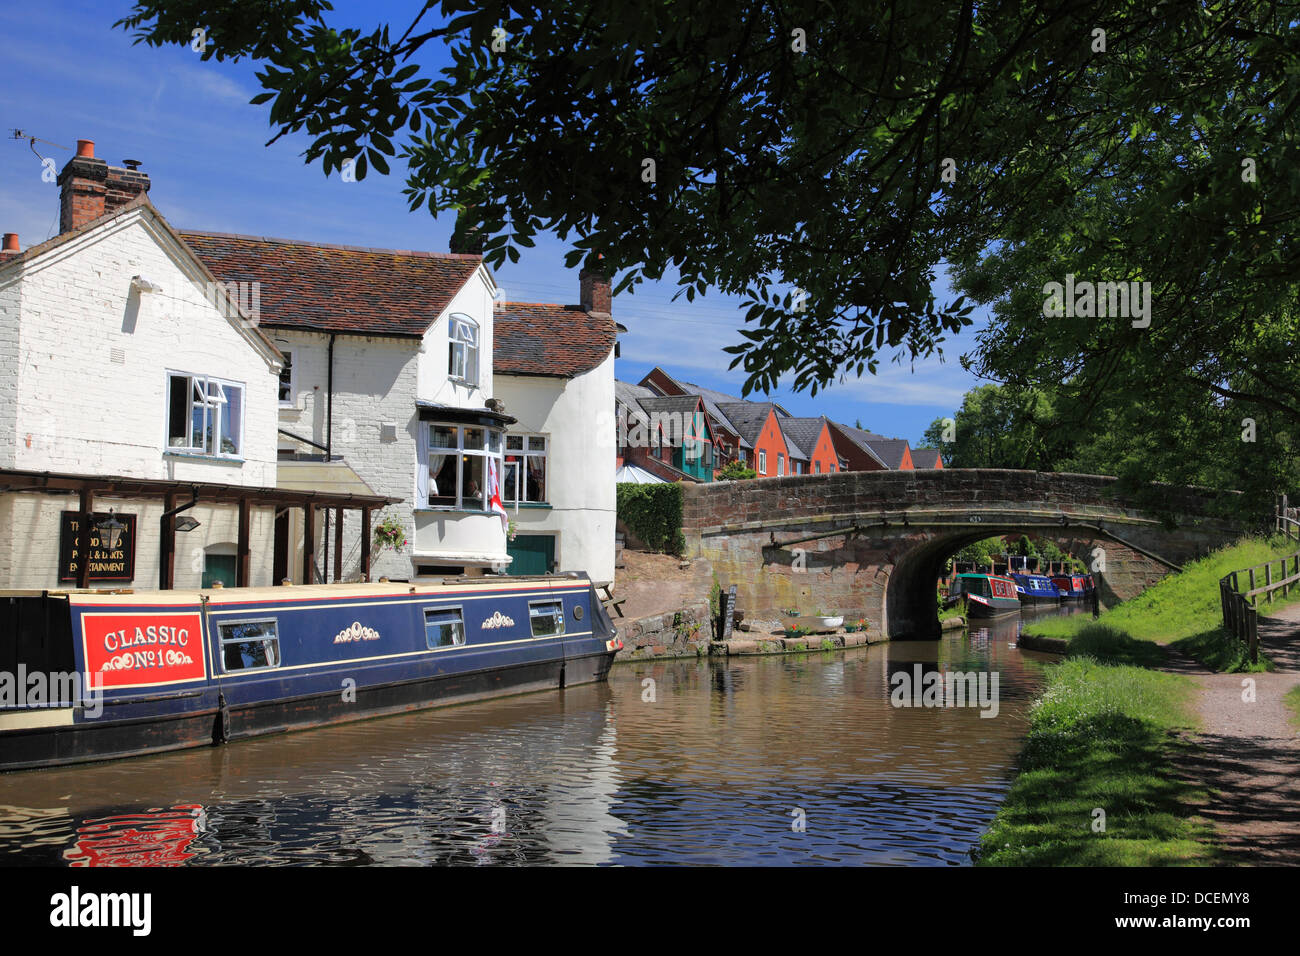 Narrowboats by the Boat Inn pub at Gnosall in Staffordshire next to Gnosall Bridge on the Shropshire Union Canal - Stock Image